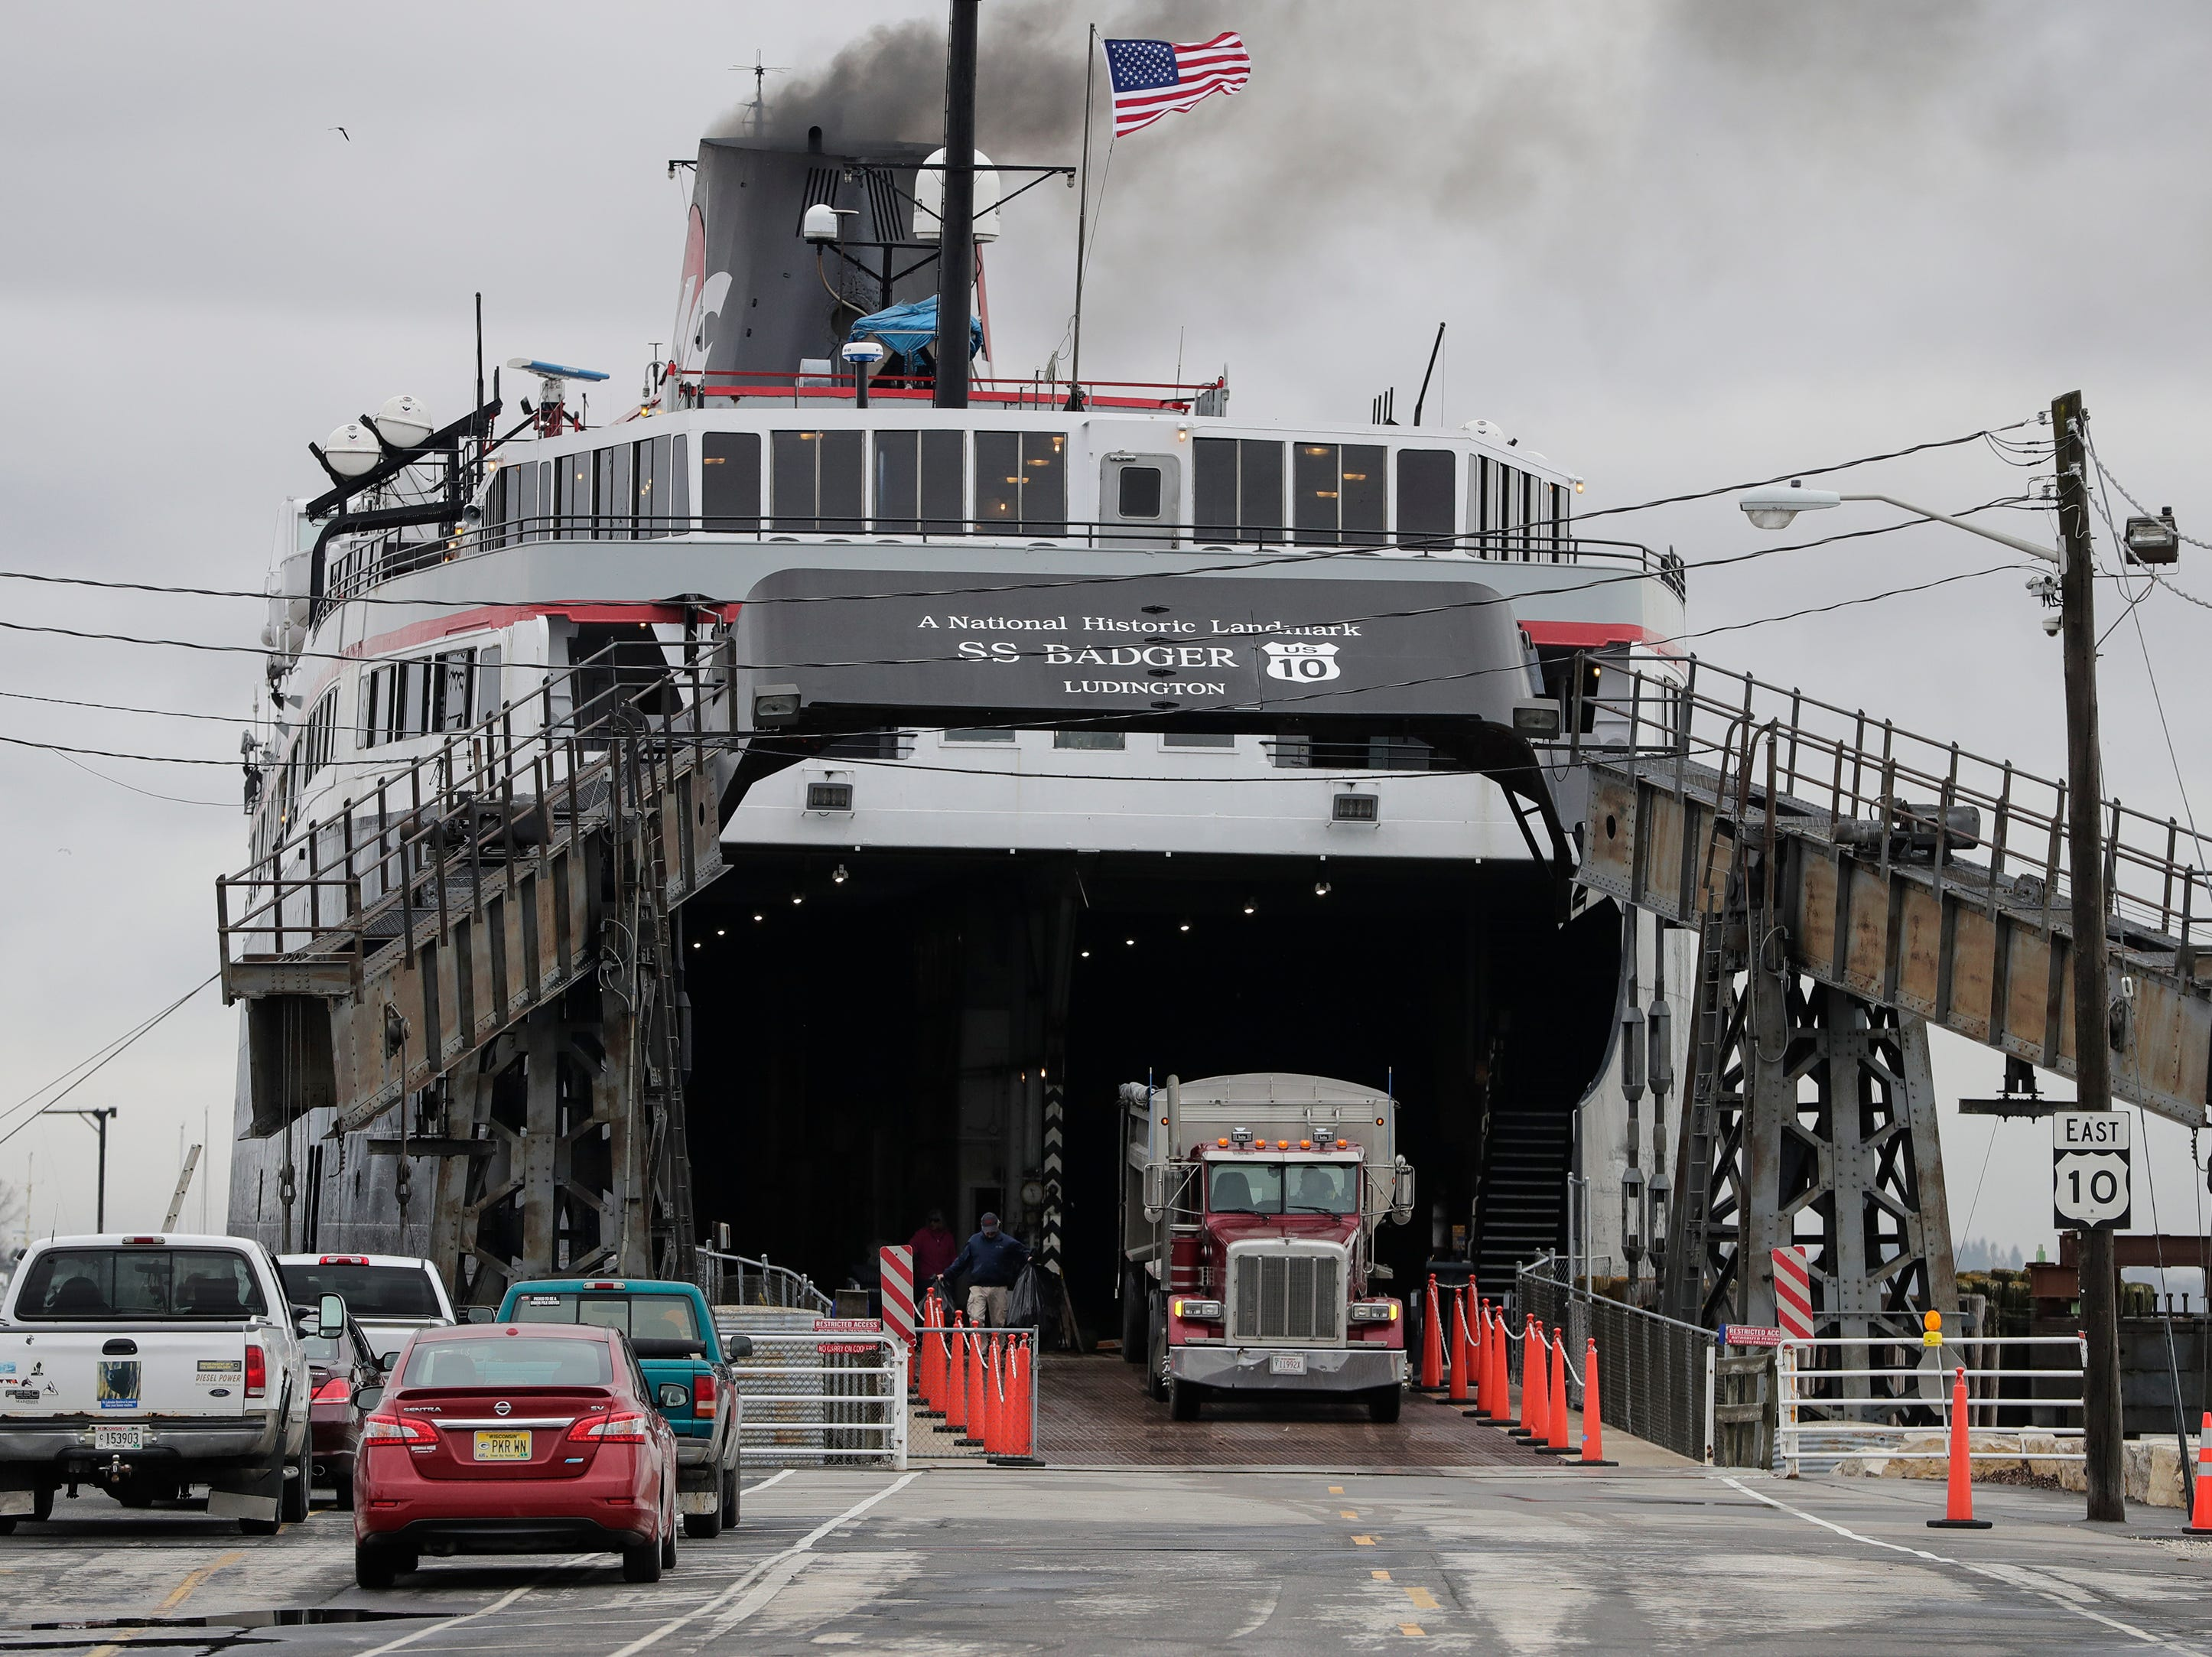 A semi backs into the S.S. Badger car ferry on the new car ramp Thursday, May 9, 2019, in Manitowoc, Wis. Joshua Clark/USA TODAY NETWORK-Wisconsin